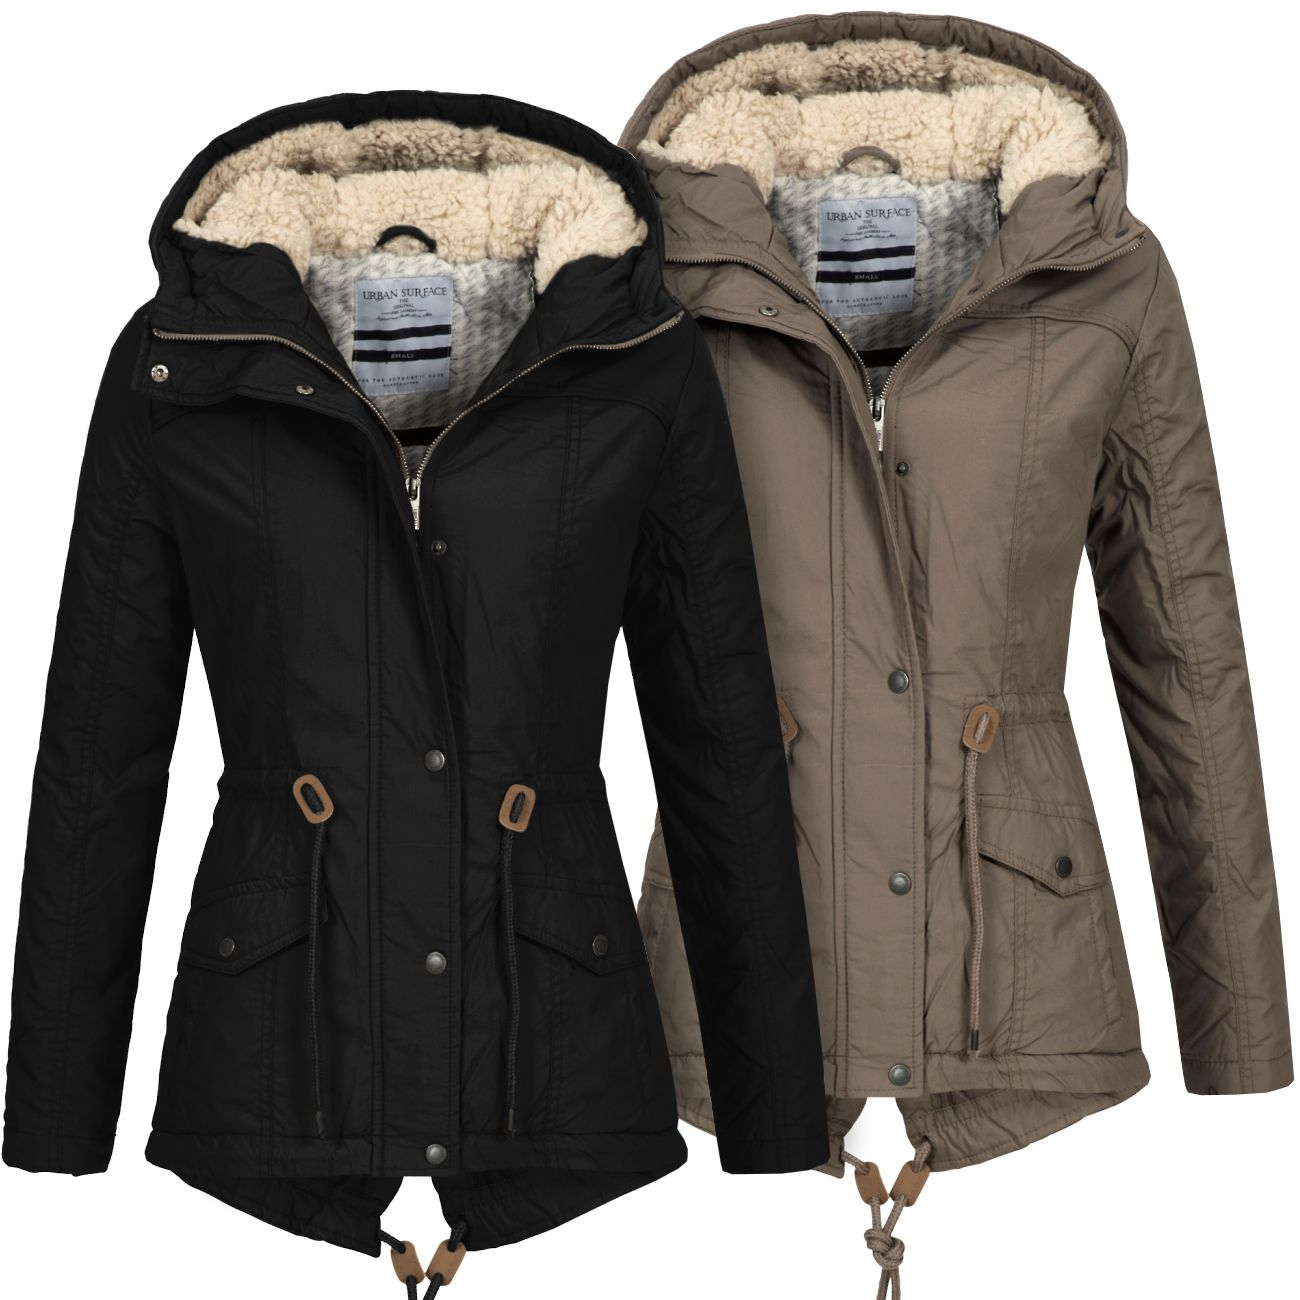 urban surface damen jacke lus 091 damenjacke herbst winter parka mantel kapuze ebay. Black Bedroom Furniture Sets. Home Design Ideas